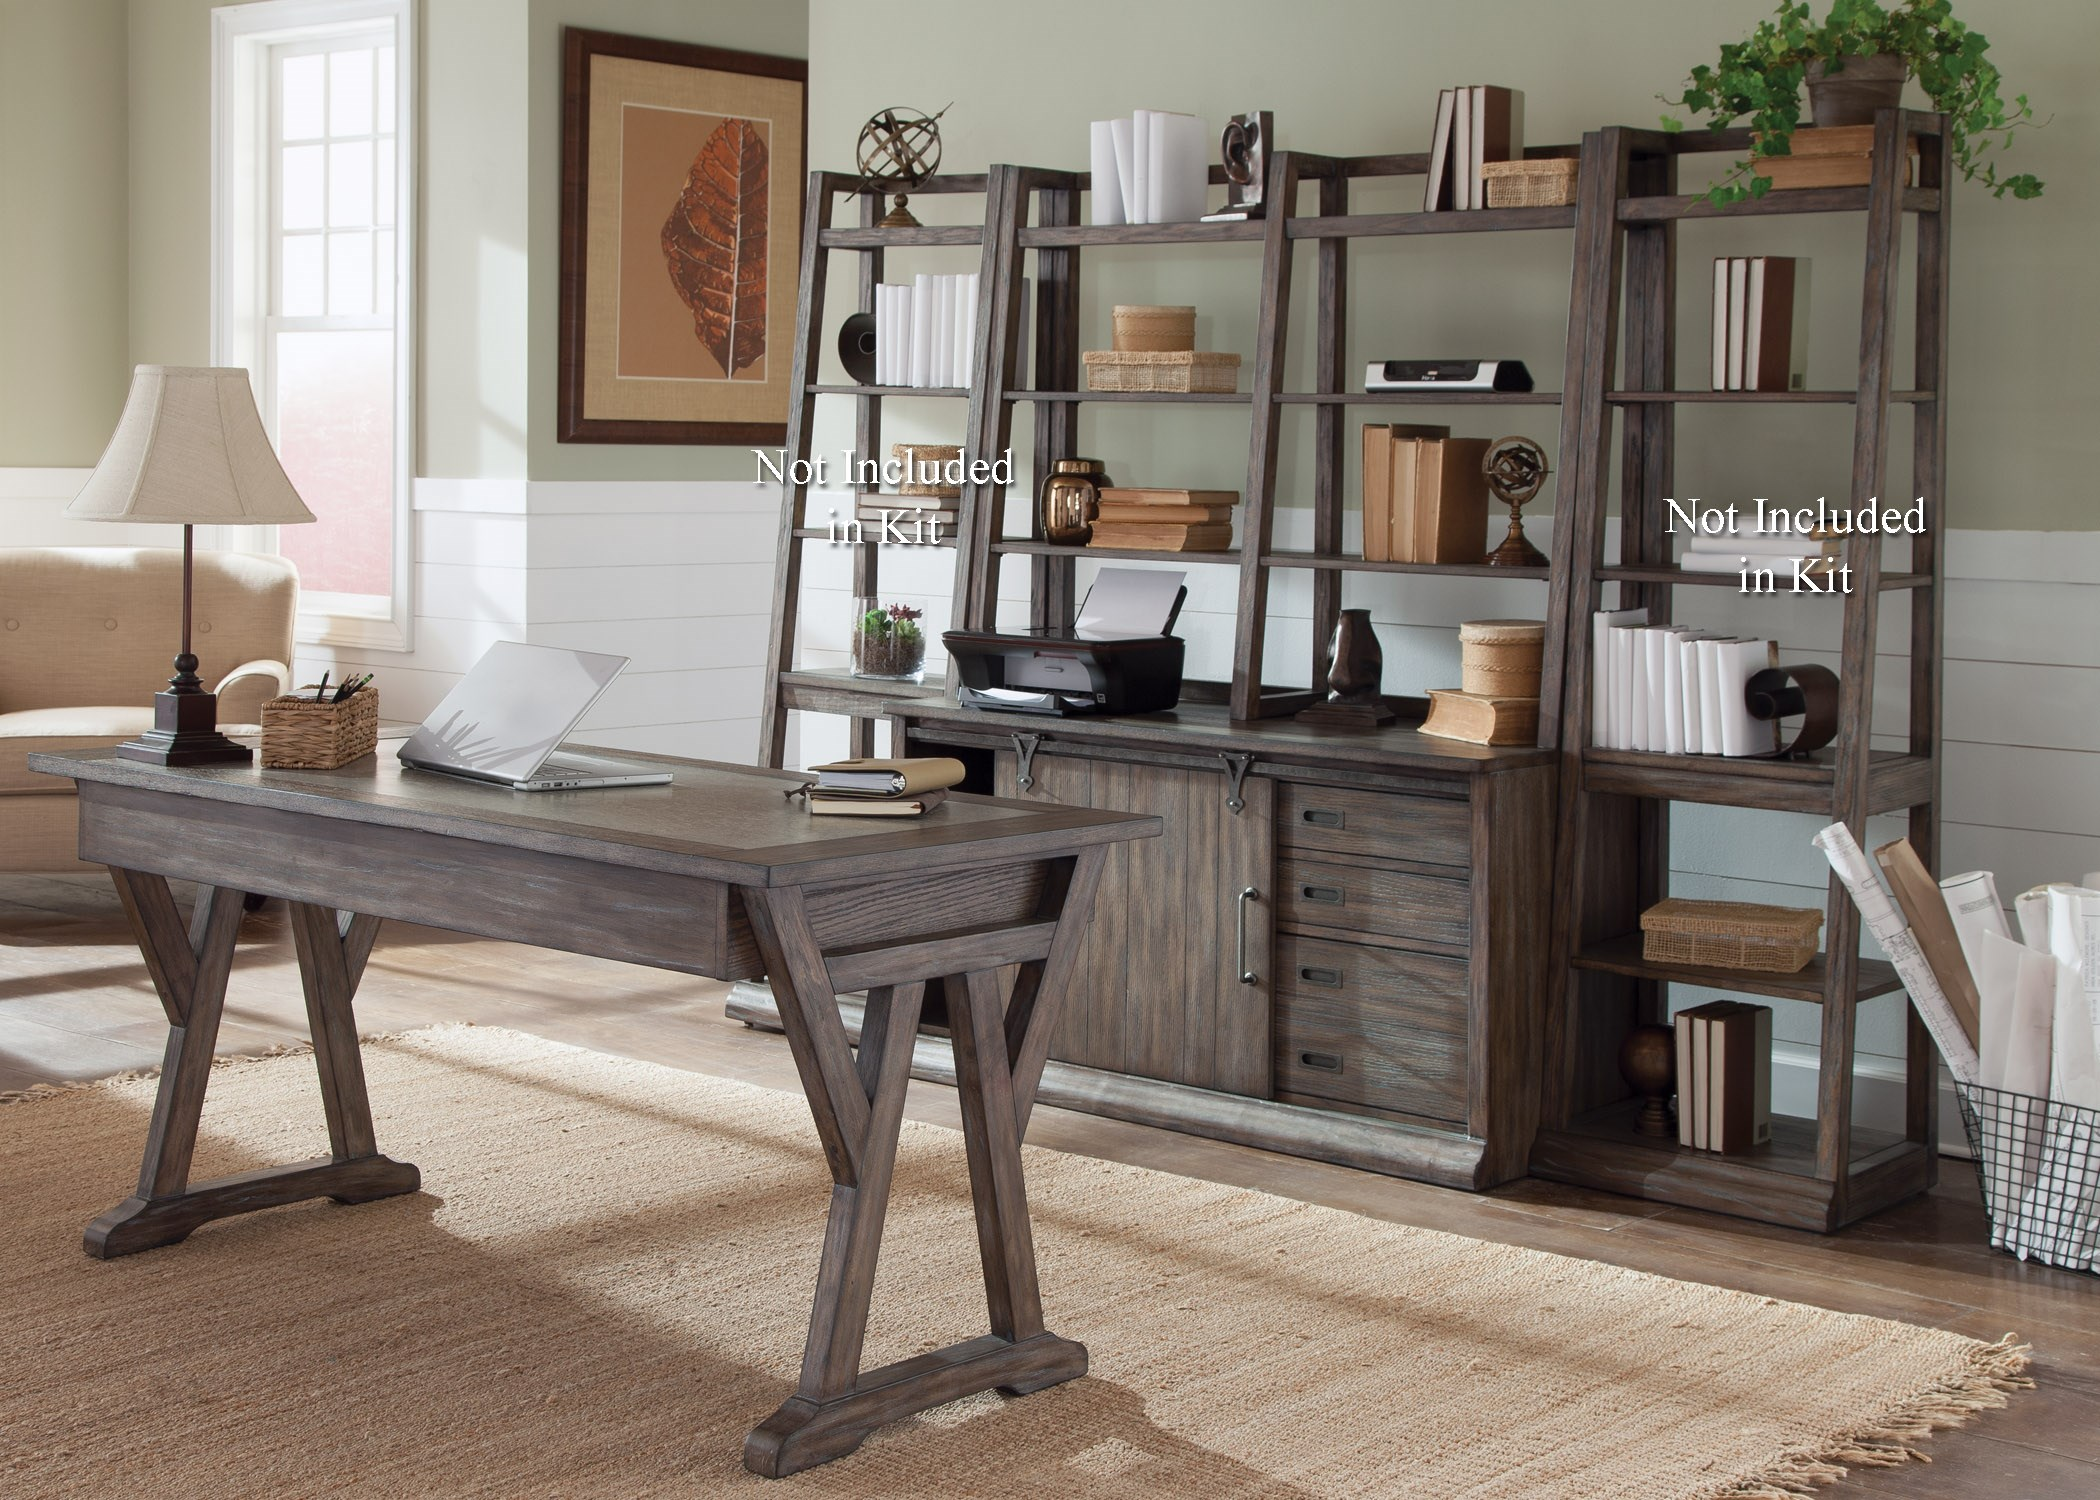 Exceptionnel Liberty Furniture Stone Brook Complete Desk In Distressed Wood Finish